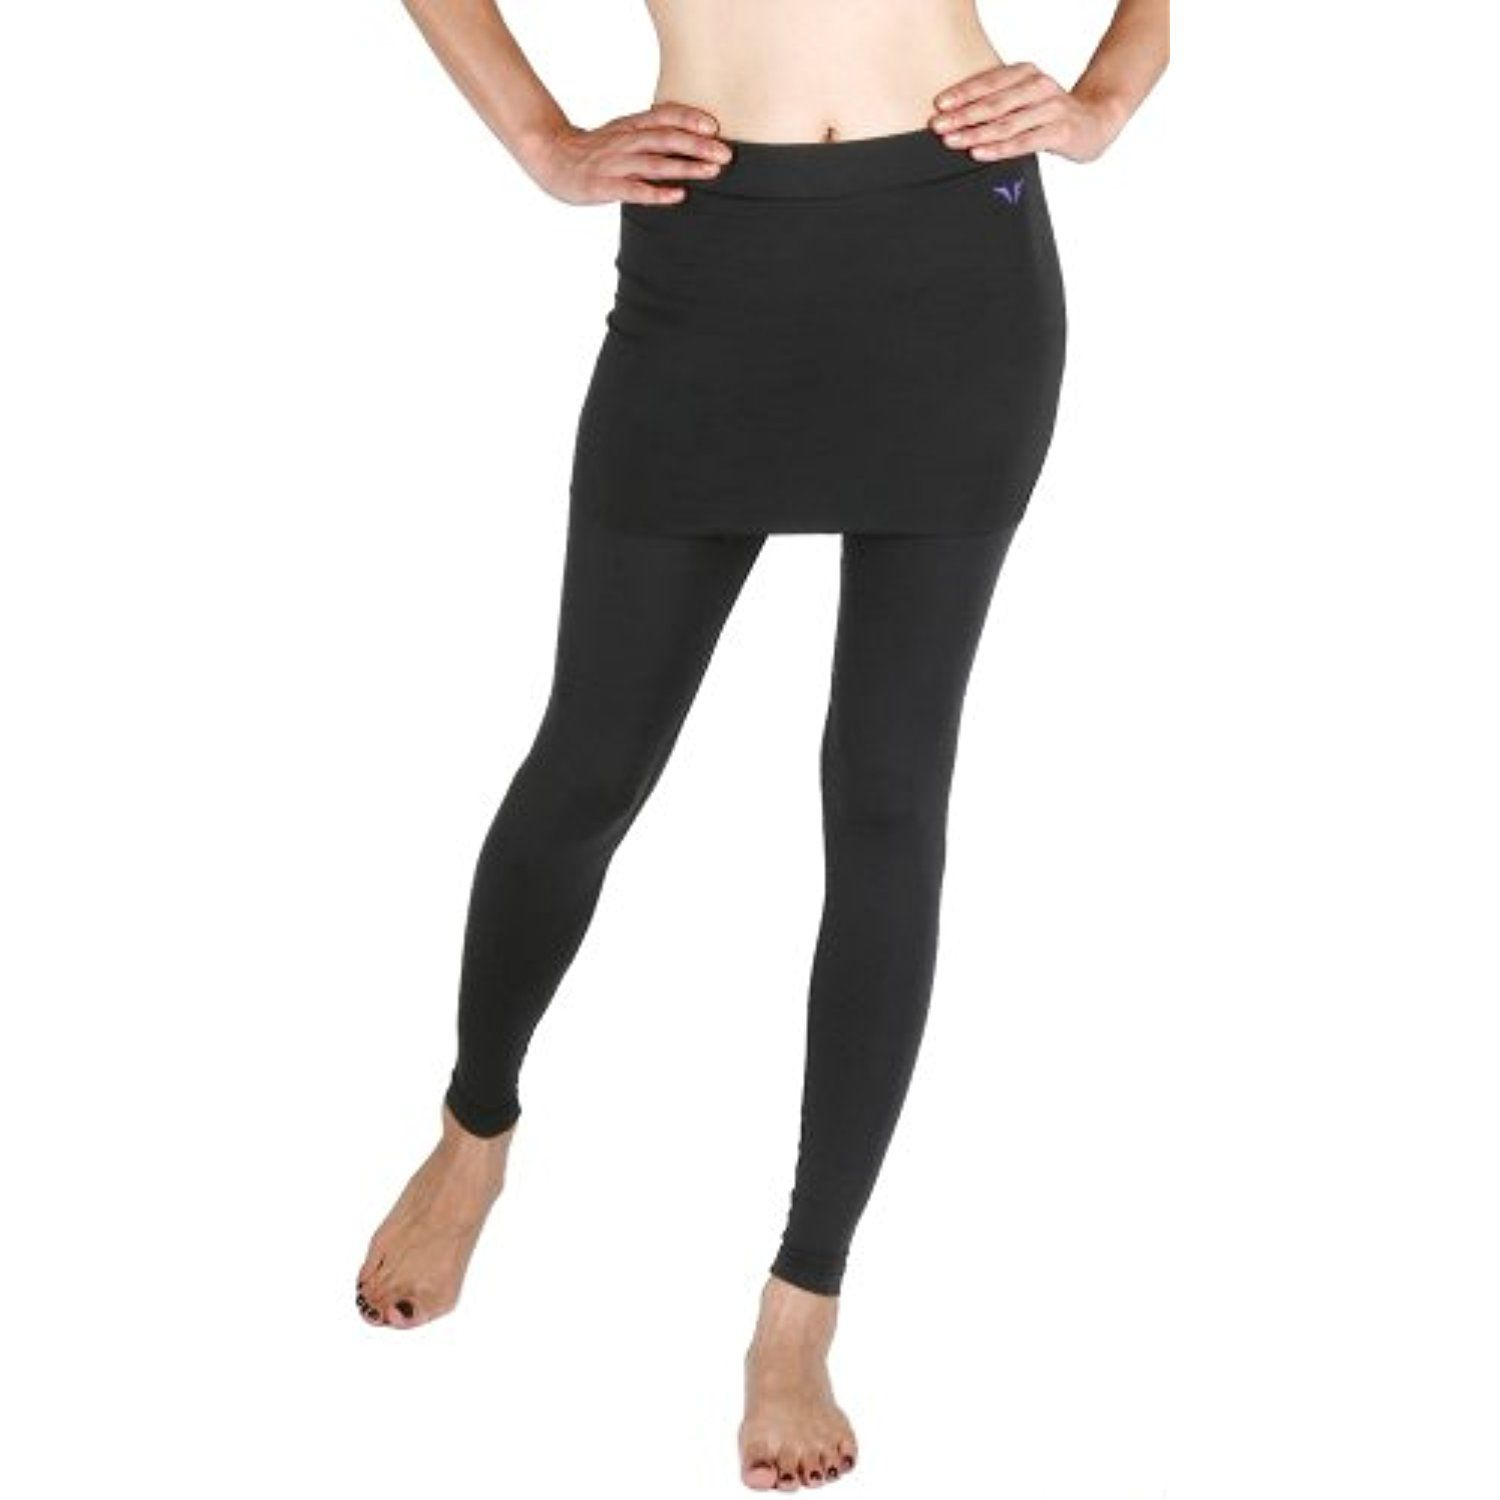 New 191 Skin Tights Compression Leggings Base Layer Black Skirt Pants Womens ** You can find out more details at the link of the image. (This is an affiliate link and I receive a commission for the sales) #Compression